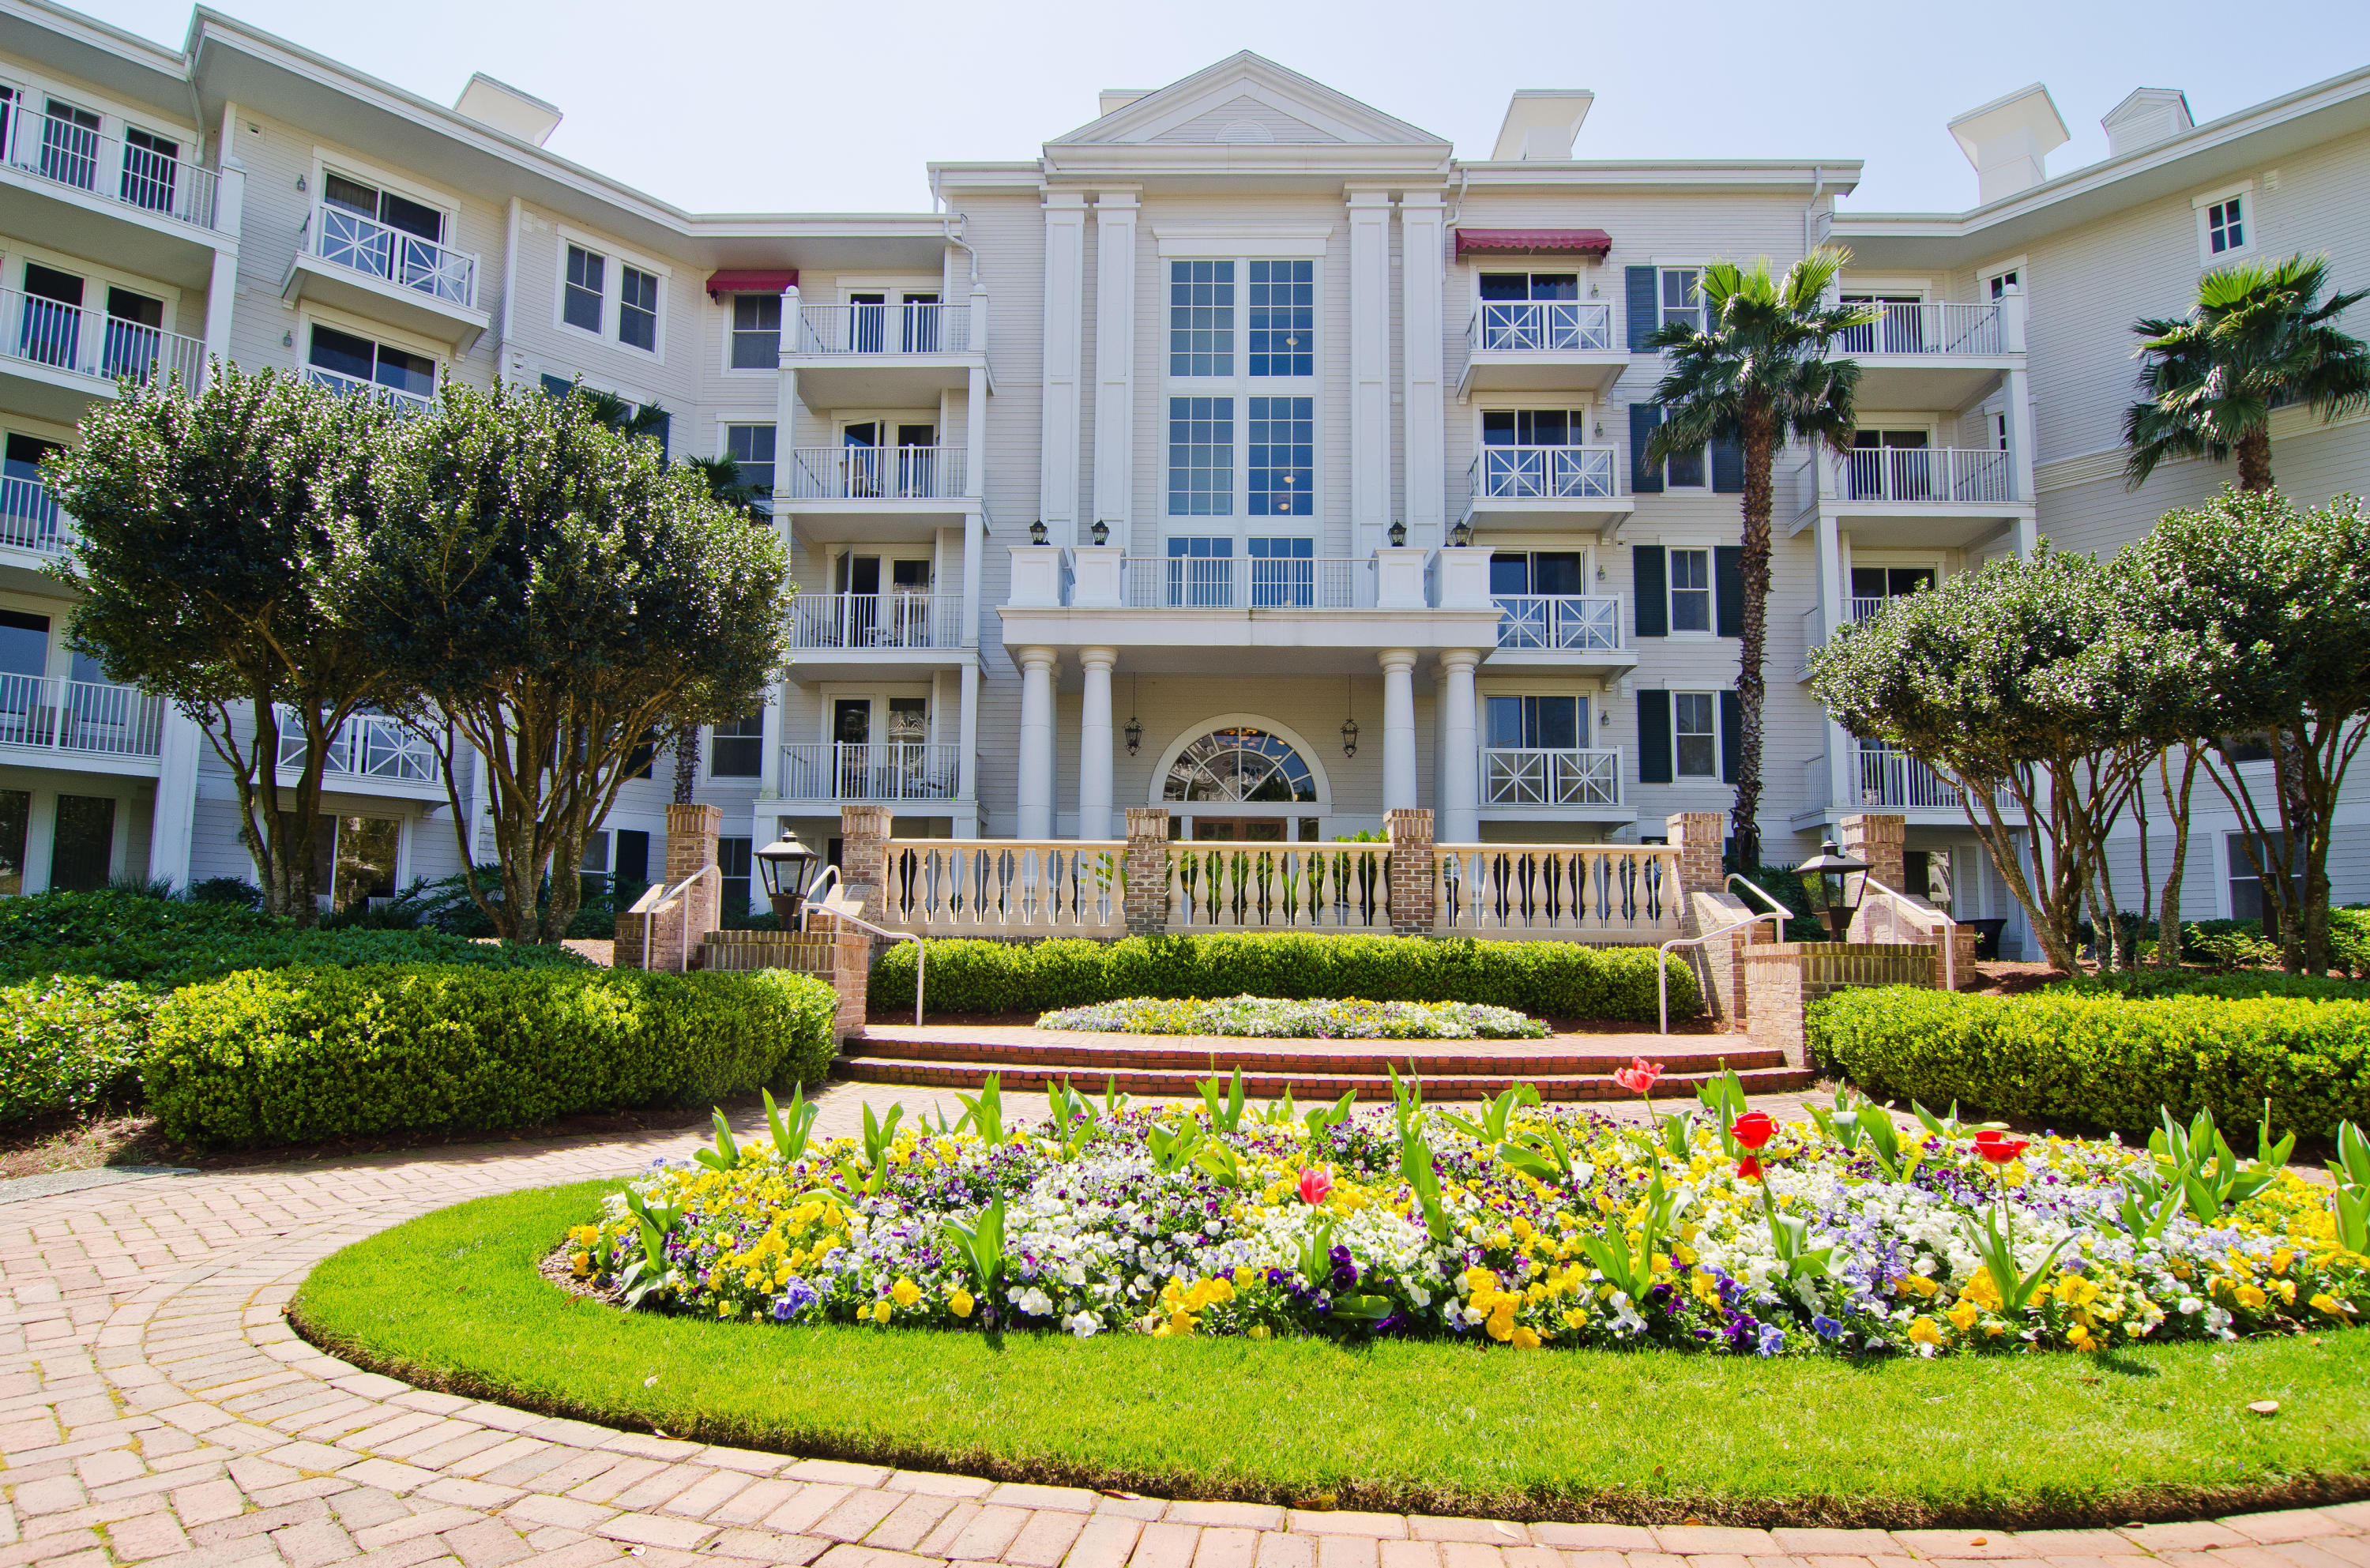 """One of the largest 1bed/2bath floor plans with a balcony in Lasata. Located on the 2nd floor with views of the Grand Gardens. This resort home has been updated with beautiful hardwood style tiled flooring throughout the living area and bedroom, flat screen TV's, and new bedding. ''A'' rated on the Sandestin Rental Program. Guest and owners will be able to take advantage of a private gift shop, fitness center, and resort style pool. Conveniently located near the Village of Baytowne Wharf which is full of daily and nightly activities, restaurants, and shopping. As an introduction to the Sandestin lifestyle, we invite our new owners to explore amenities that make Sandestin special. The listing brokerage and seller(s) are presenting the buyer(s) of this property with (2) 90-minute rounds of Tennis court time, a golf foursome at one of our three championship courses, a round of golf for up to four (4) players and an invitation to """"Club Night"""" at the unrivaled Burnt Pine Golf Club.  Sandestin Golf and Beach Resort is a major destination for all seasons and all ages, and has been named the #1 resort on Florida's Emerald Coast. This magical resort spanning over 2,000 acres is comprised of over 70 unique neighborhoods of condominiums, villas, town homes, and estates. The resort features miles of sandy white beaches and pristine bay front, four championship golf courses, a world-class tennis center with 15 courts, 4 resort swimming pools (and 15 private neighborhood pools), a 113-slip marina, a fully equipped and professionally staffed fitness center and spa, meeting spaces and The Village of Baytowne Wharf, a charming pedestrian village with events, shopping, dining, family entertainment and nightlife. For true golf cart community living, Grand Boulevard is just outside the resort gates and provides access to additional shopping, dining and entertainment â"""" all without traveling on Hwy. 98.  Come to Play, Stay for Life!"""